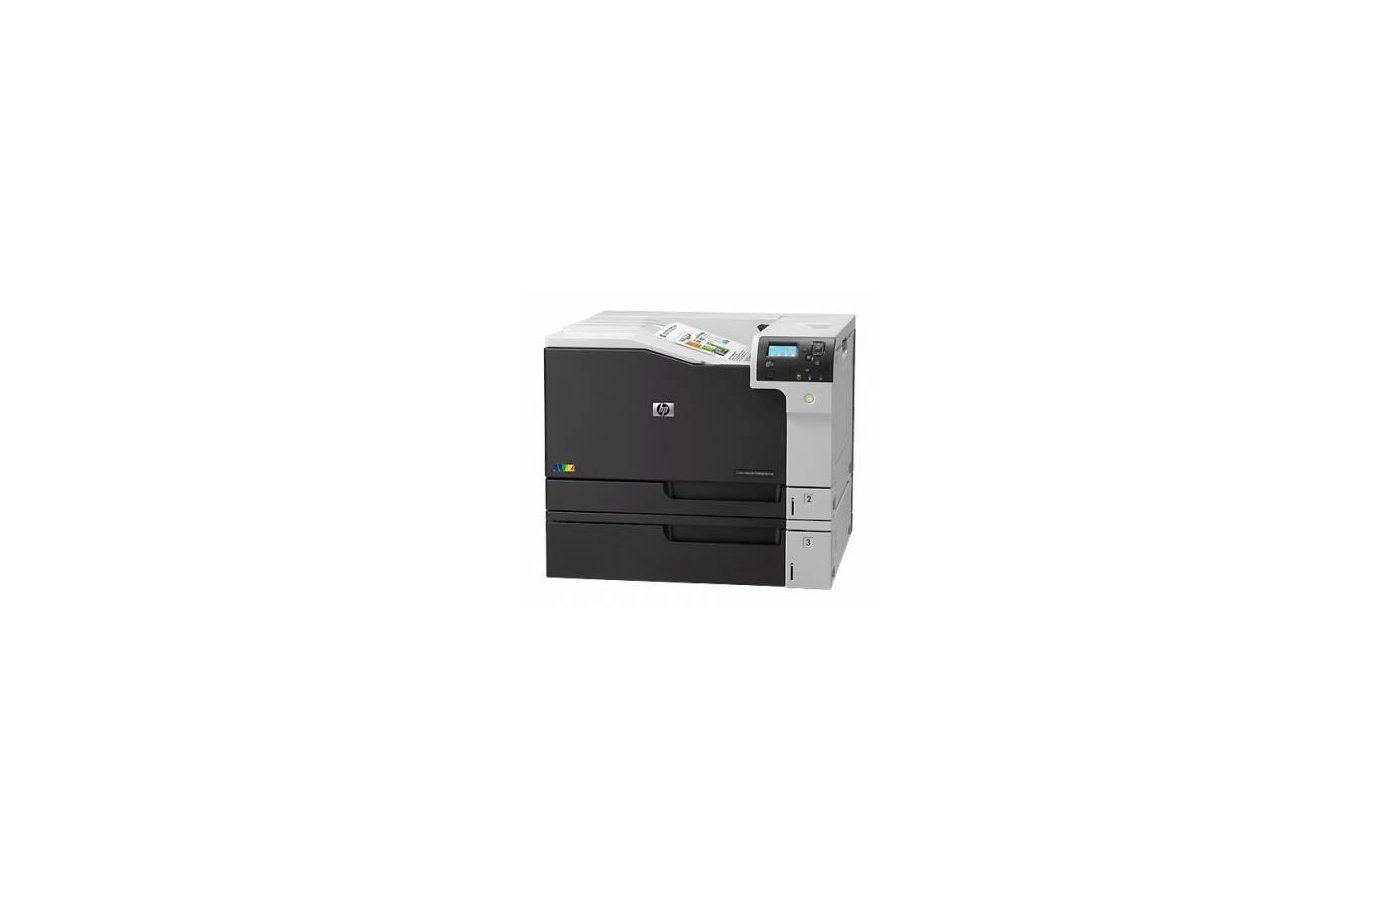 Принтер HP Color LaserJet Enterprise 700 M750n A3 Net